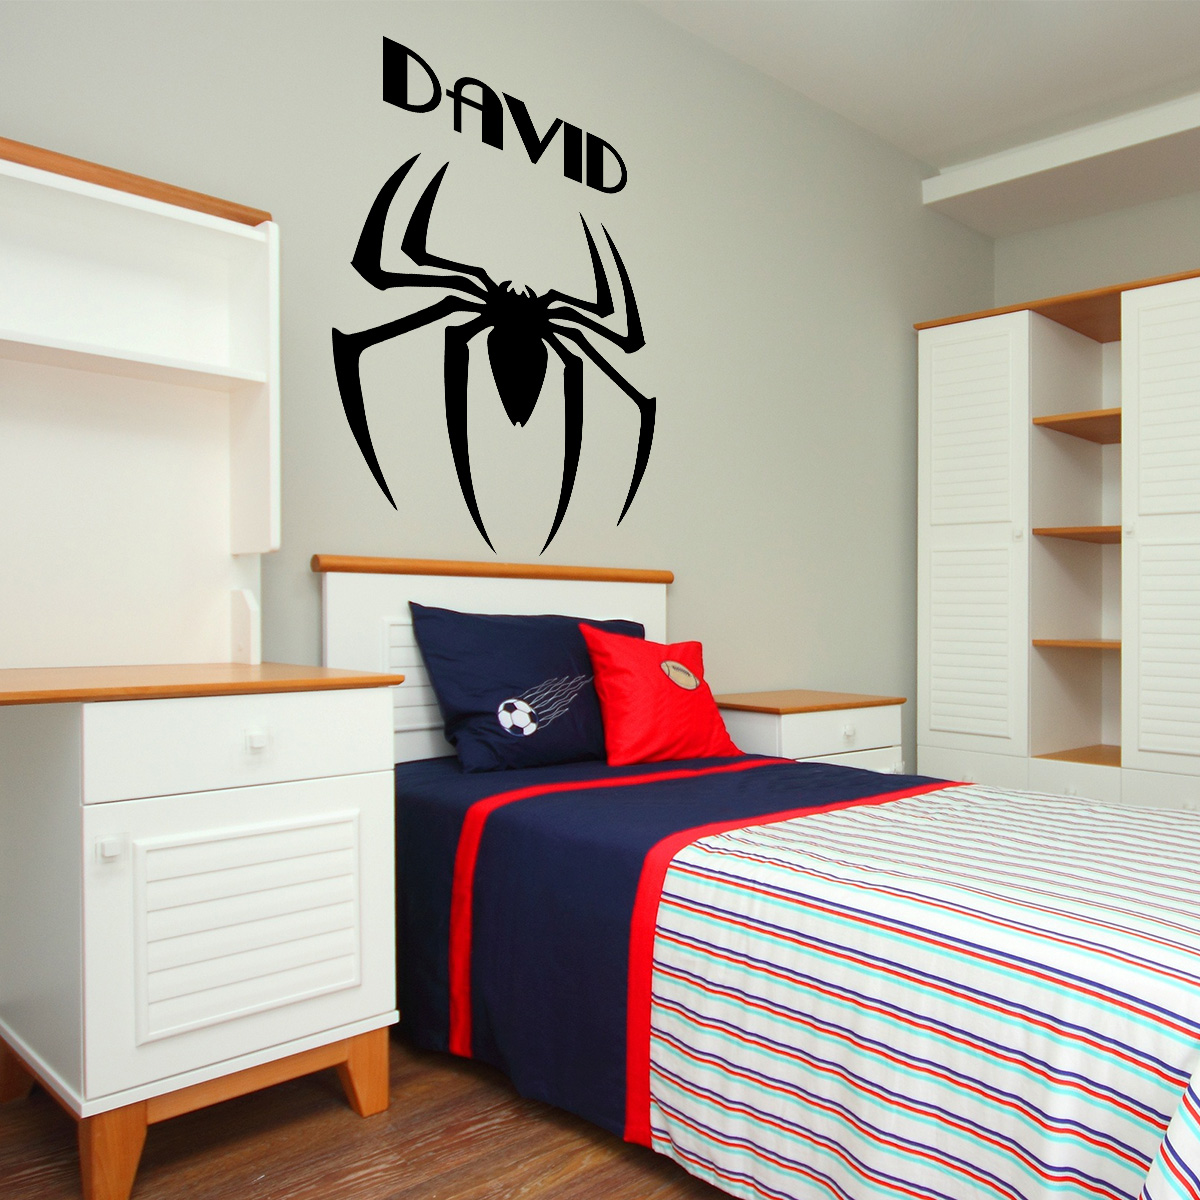 sticker pr nom personnalis araign e avec des super pouvoirs animaux insectes ambiance sticker. Black Bedroom Furniture Sets. Home Design Ideas